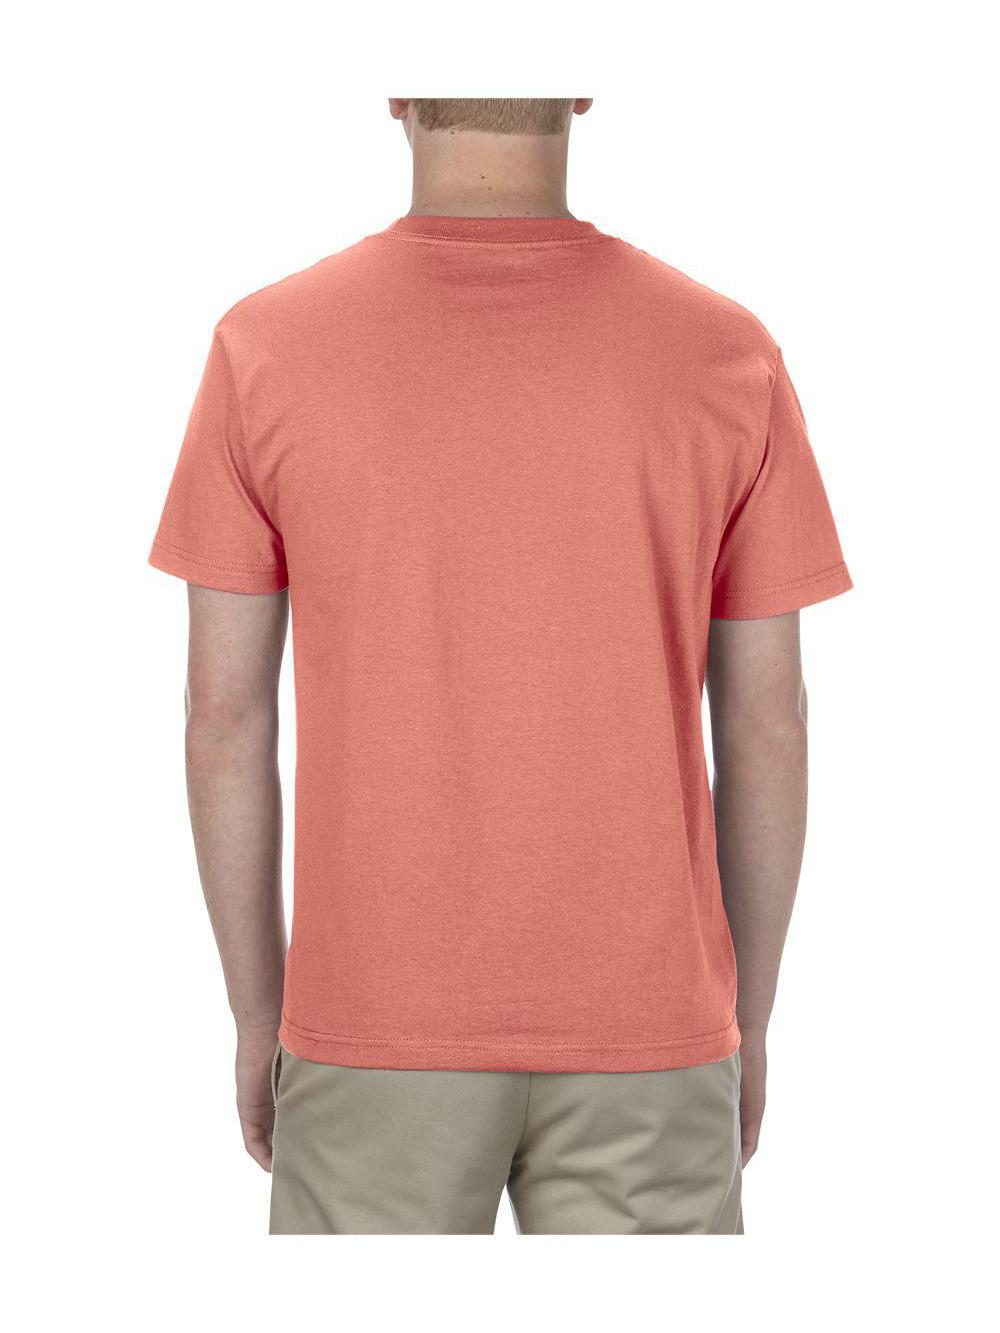 ALSTYLE-Classic-T-Shirt-1301 thumbnail 34